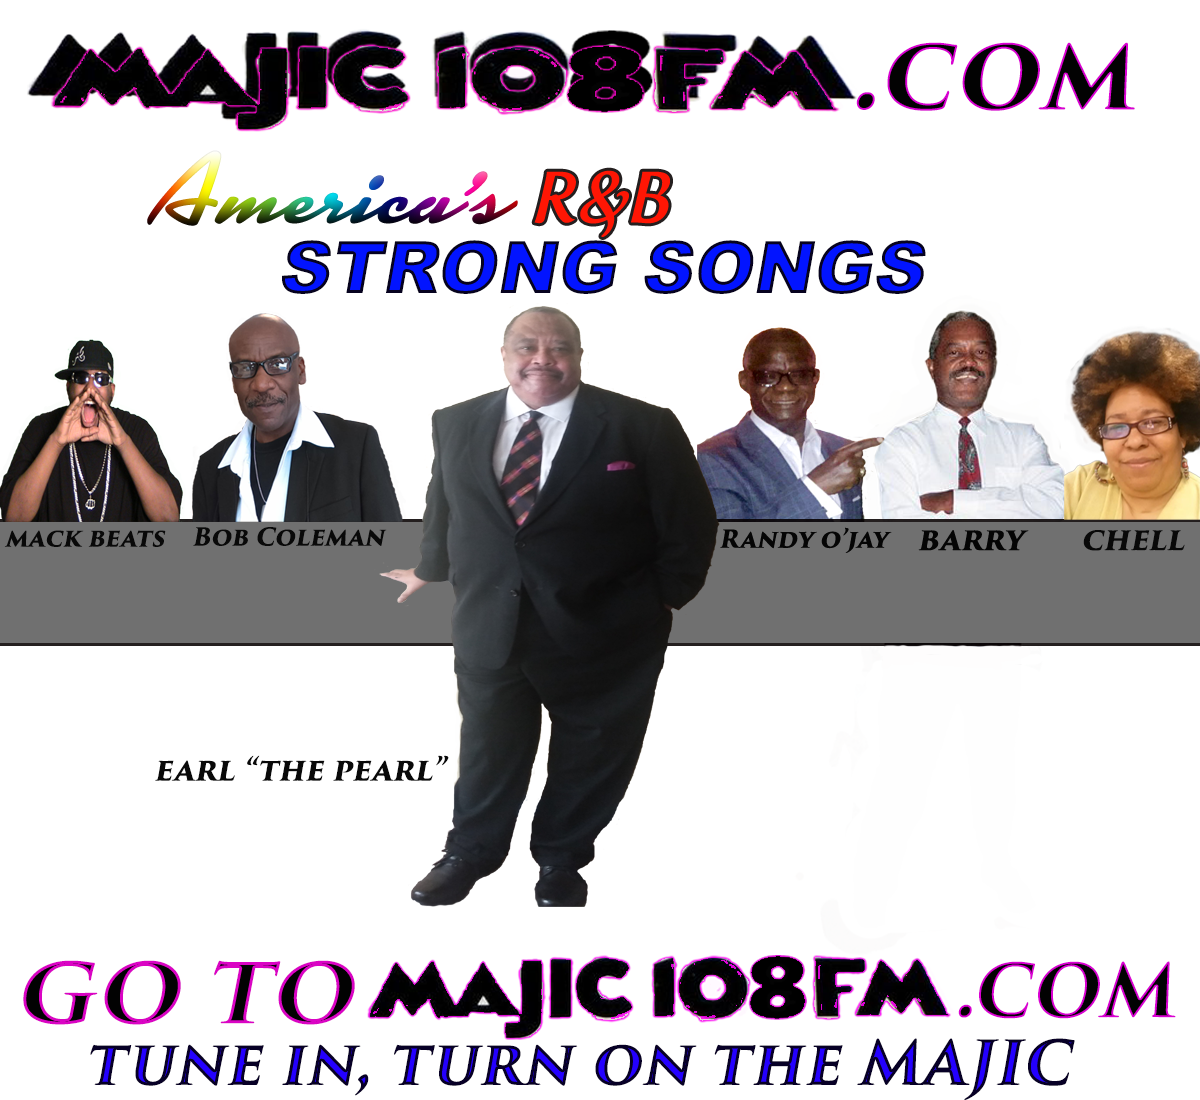 majic strong1a logo aab final1 test